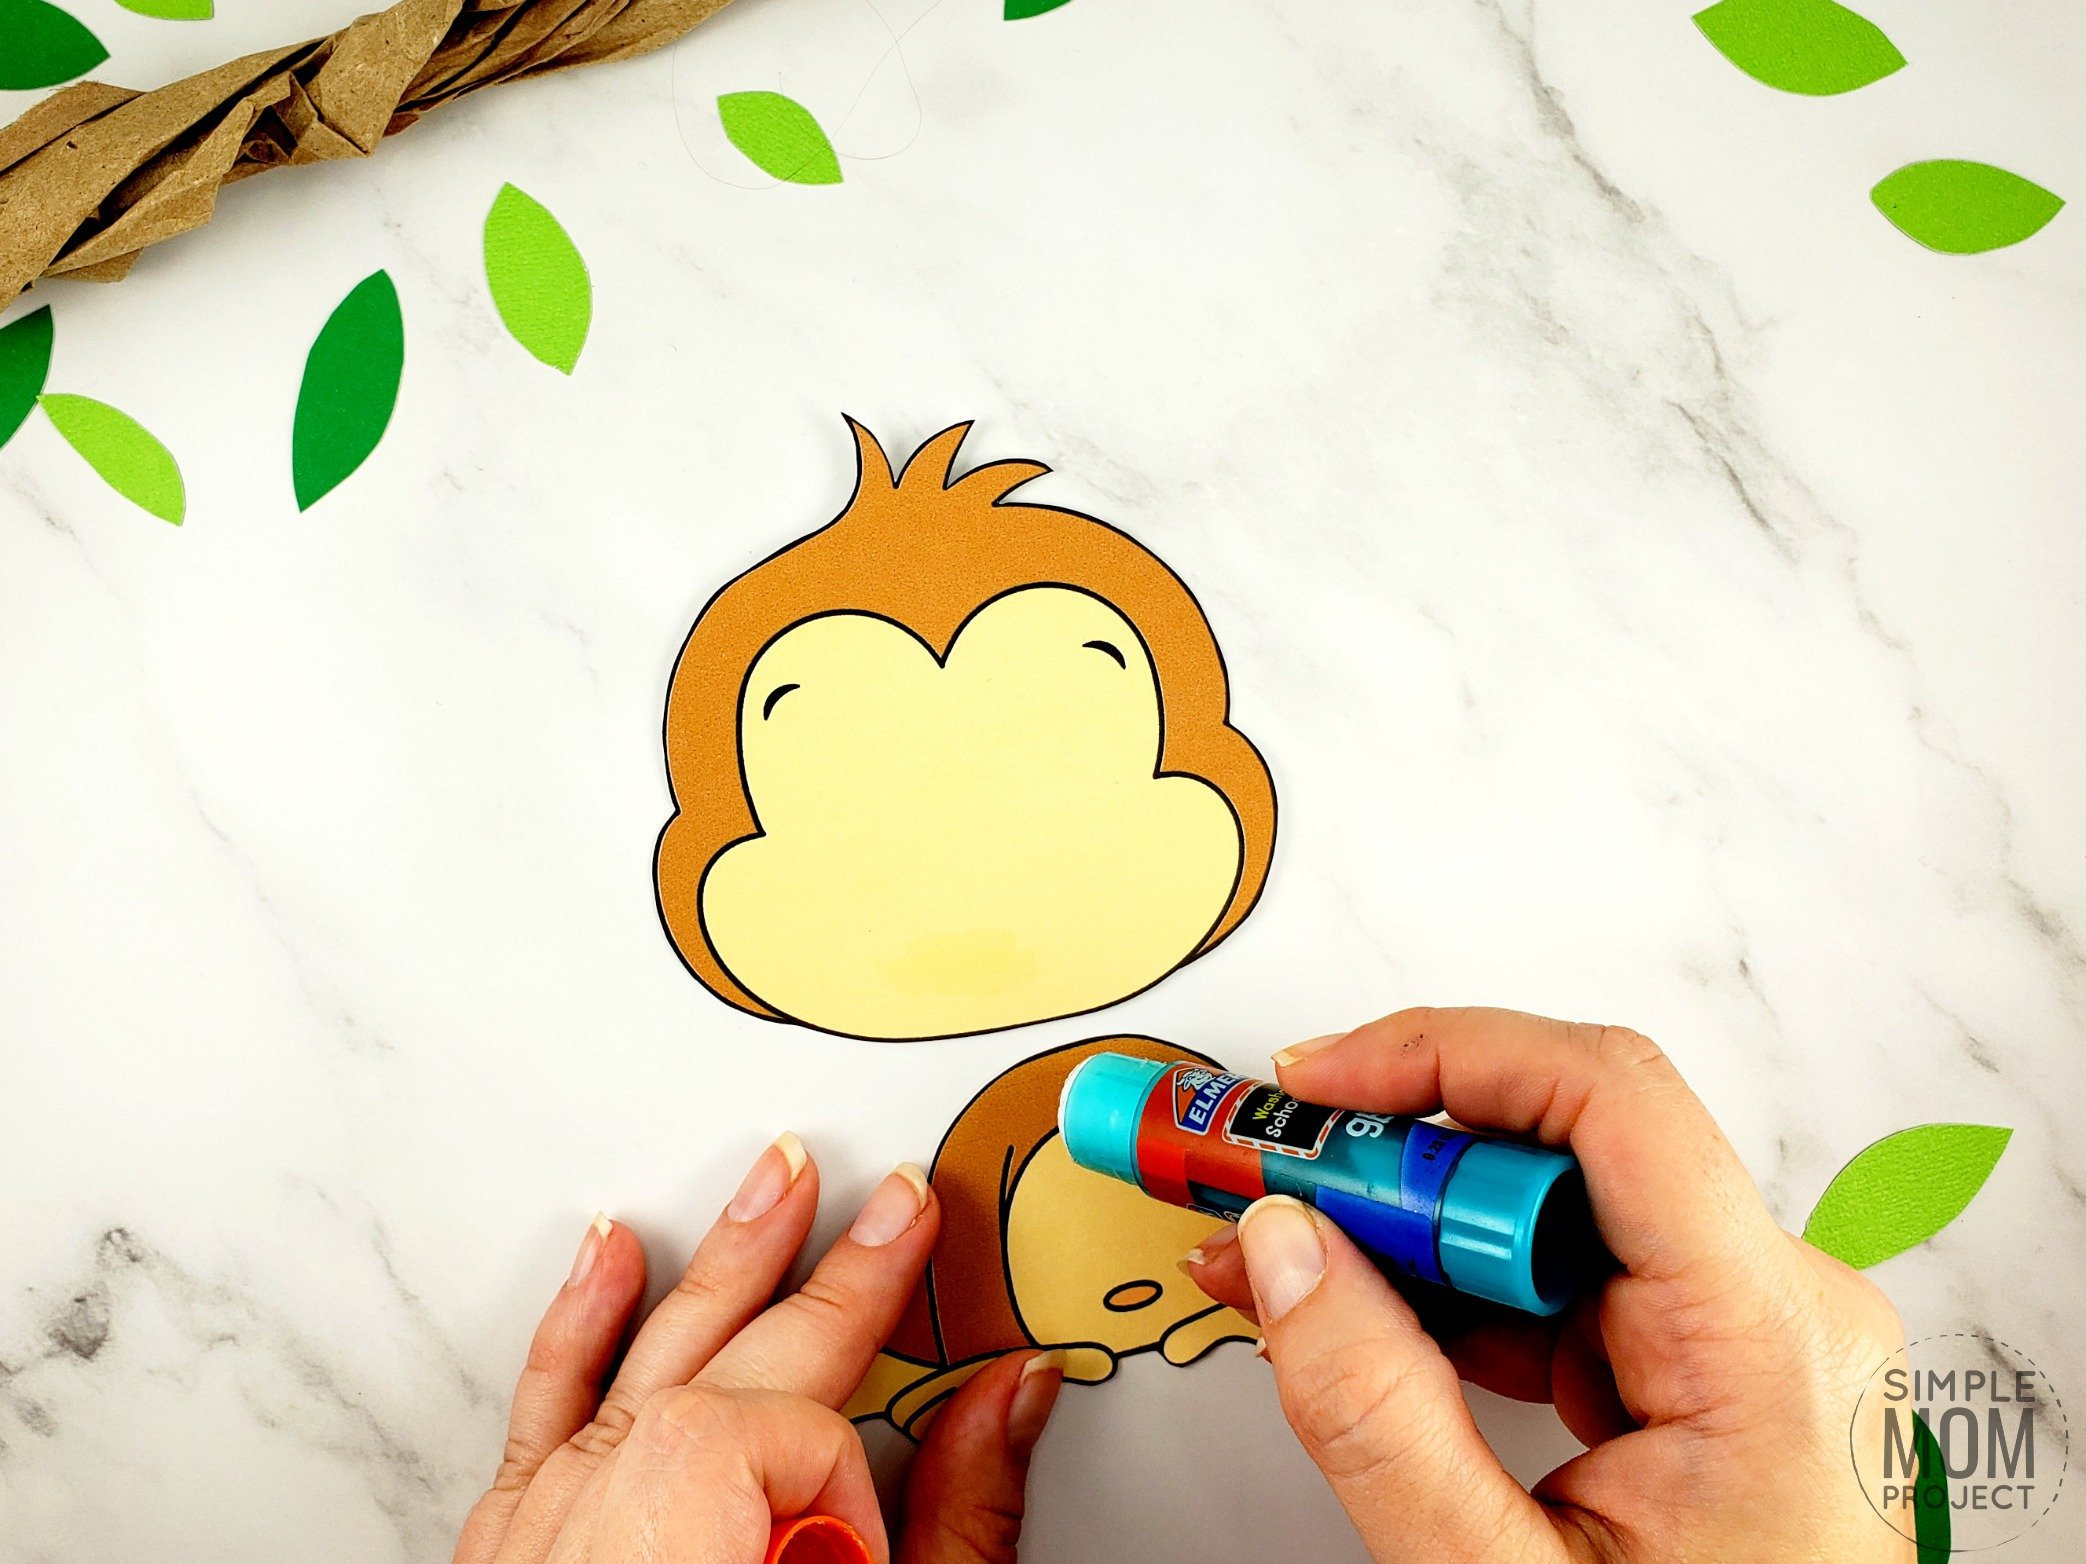 Free Printable Build a monkey craft for kids, preschoolers and toddlers 1